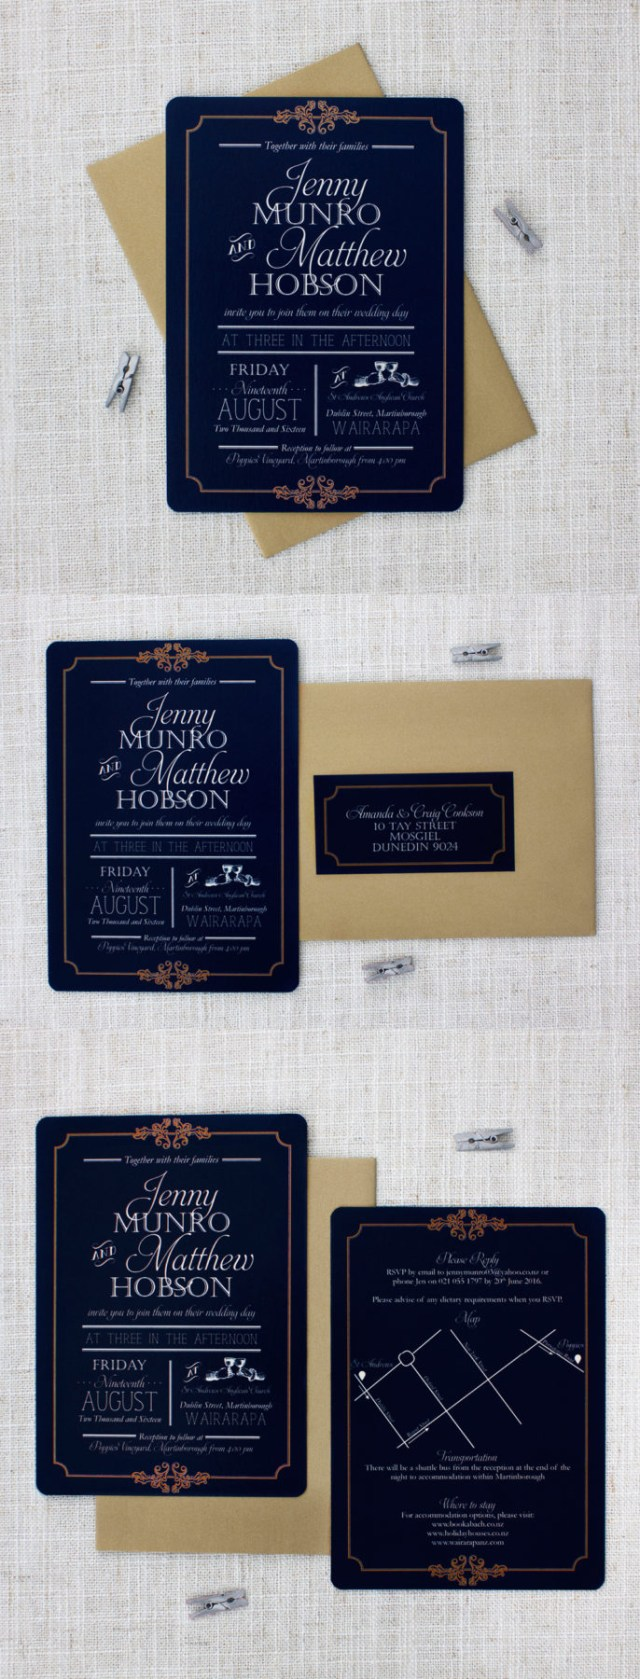 Wedding Invitations Gold Elegant Navy And Gold Wedding Invitation Be My Guest